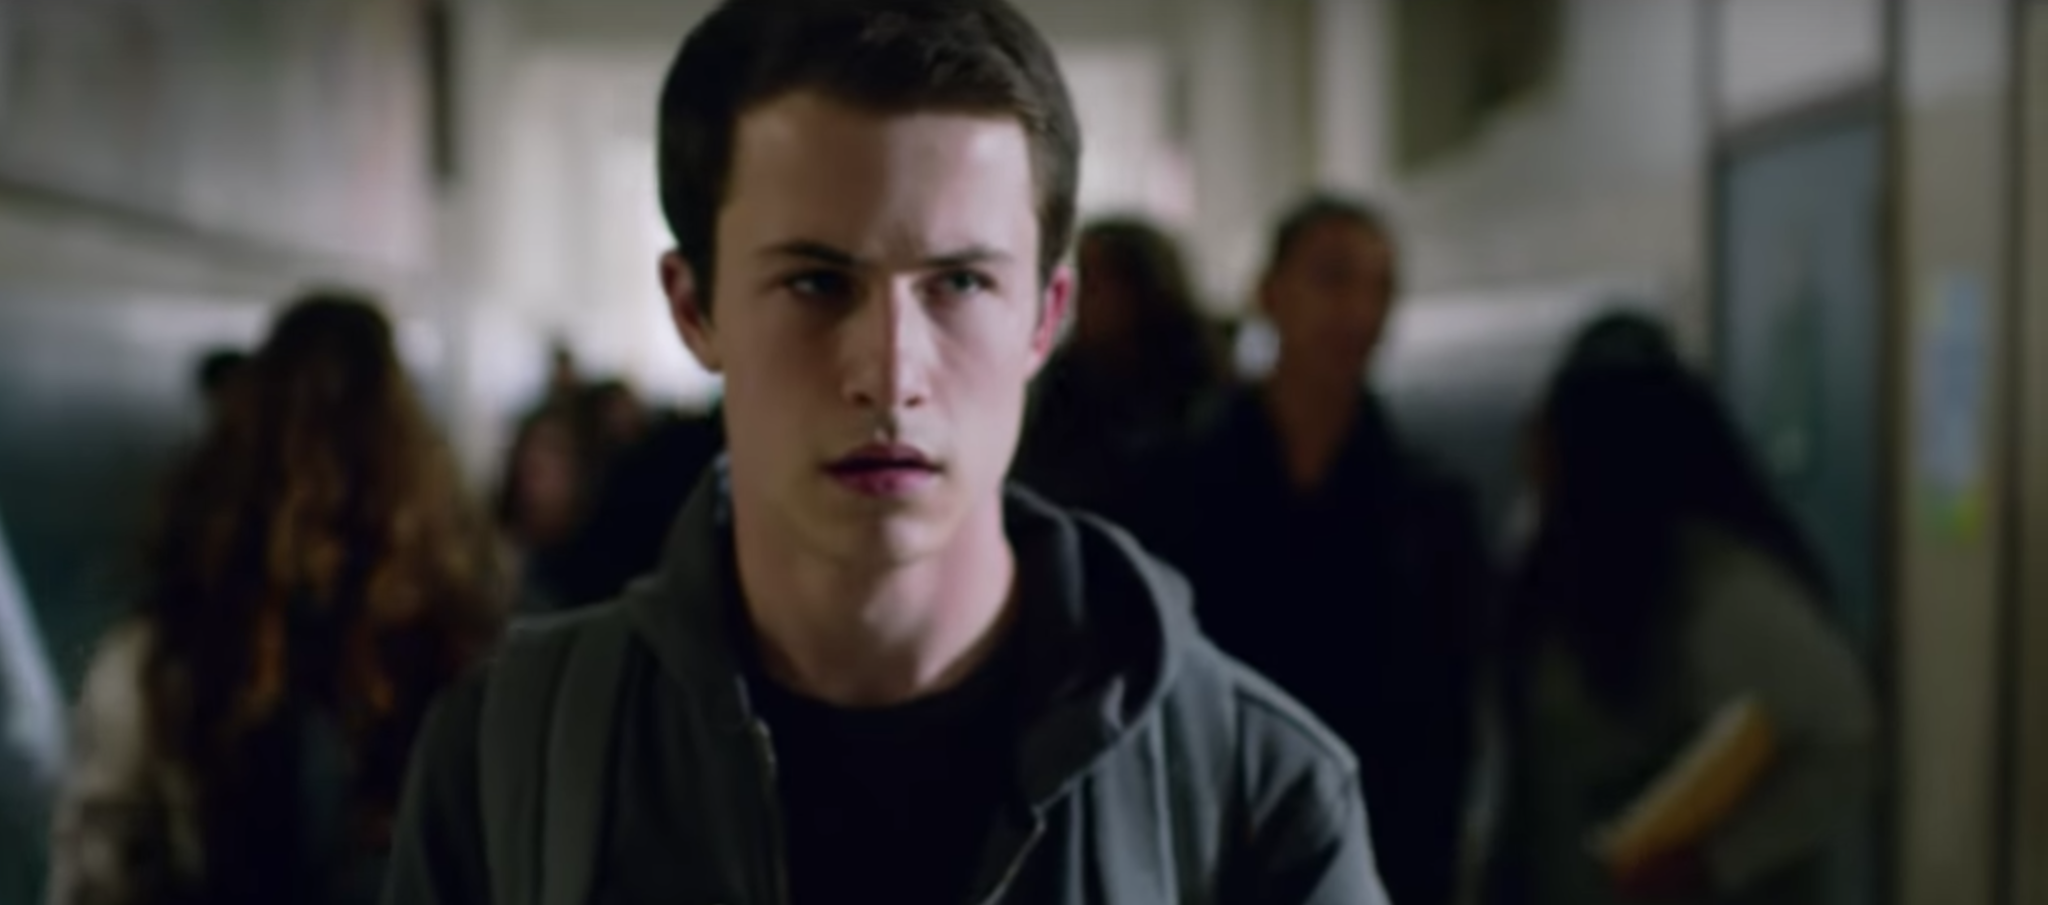 '13 Reasons Why' Season 2 Trailer Drops: Here's What We